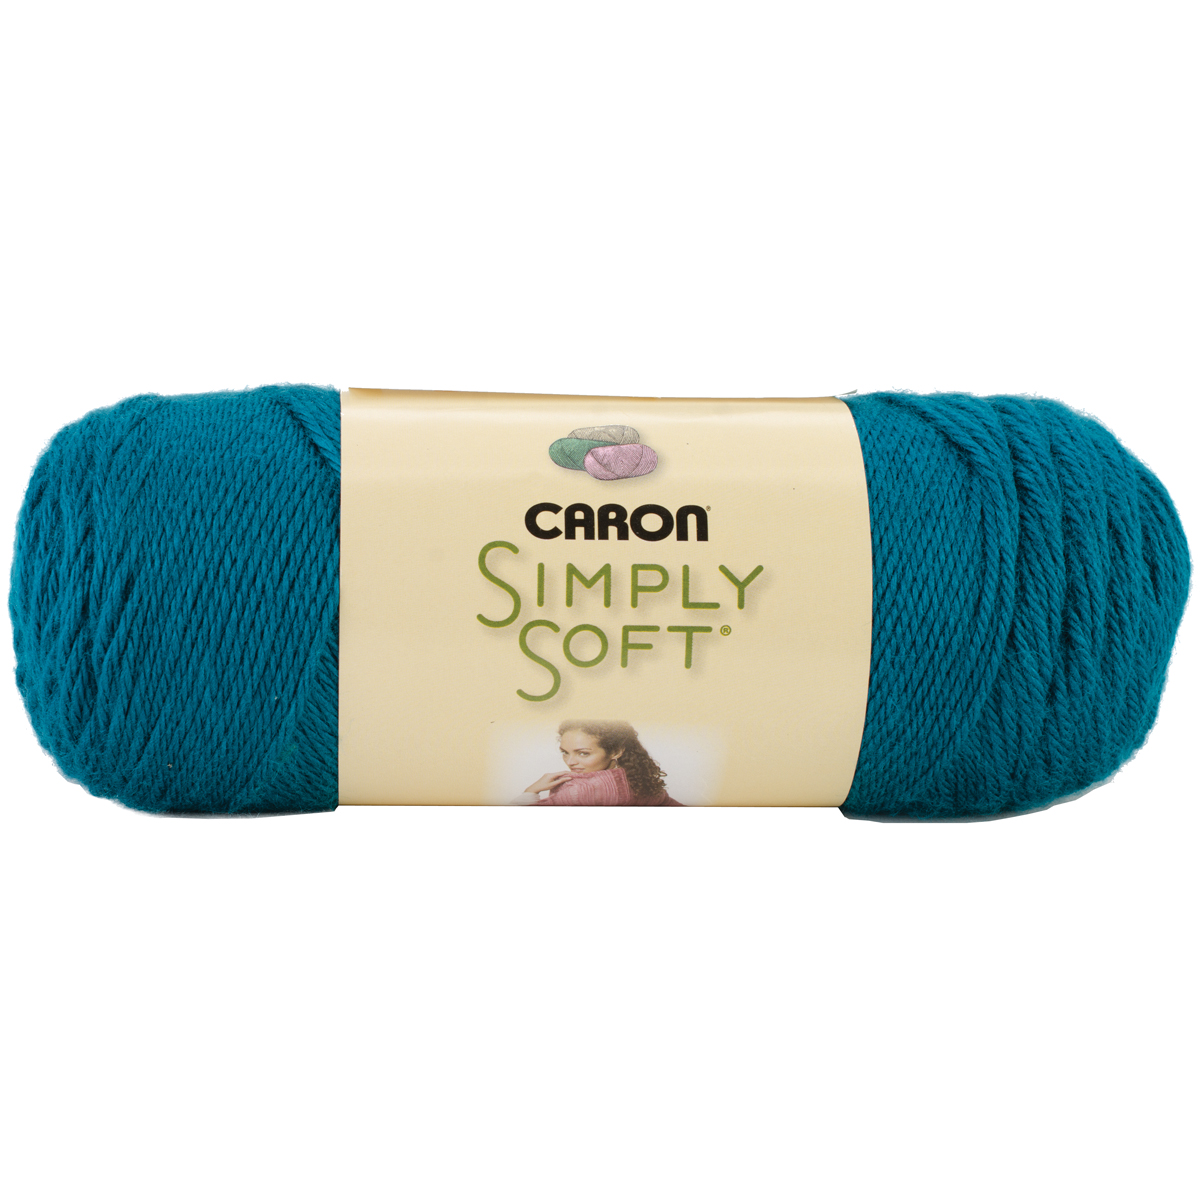 Caron Simply Soft Knitting Patterns : Simply Soft Collection Yarn